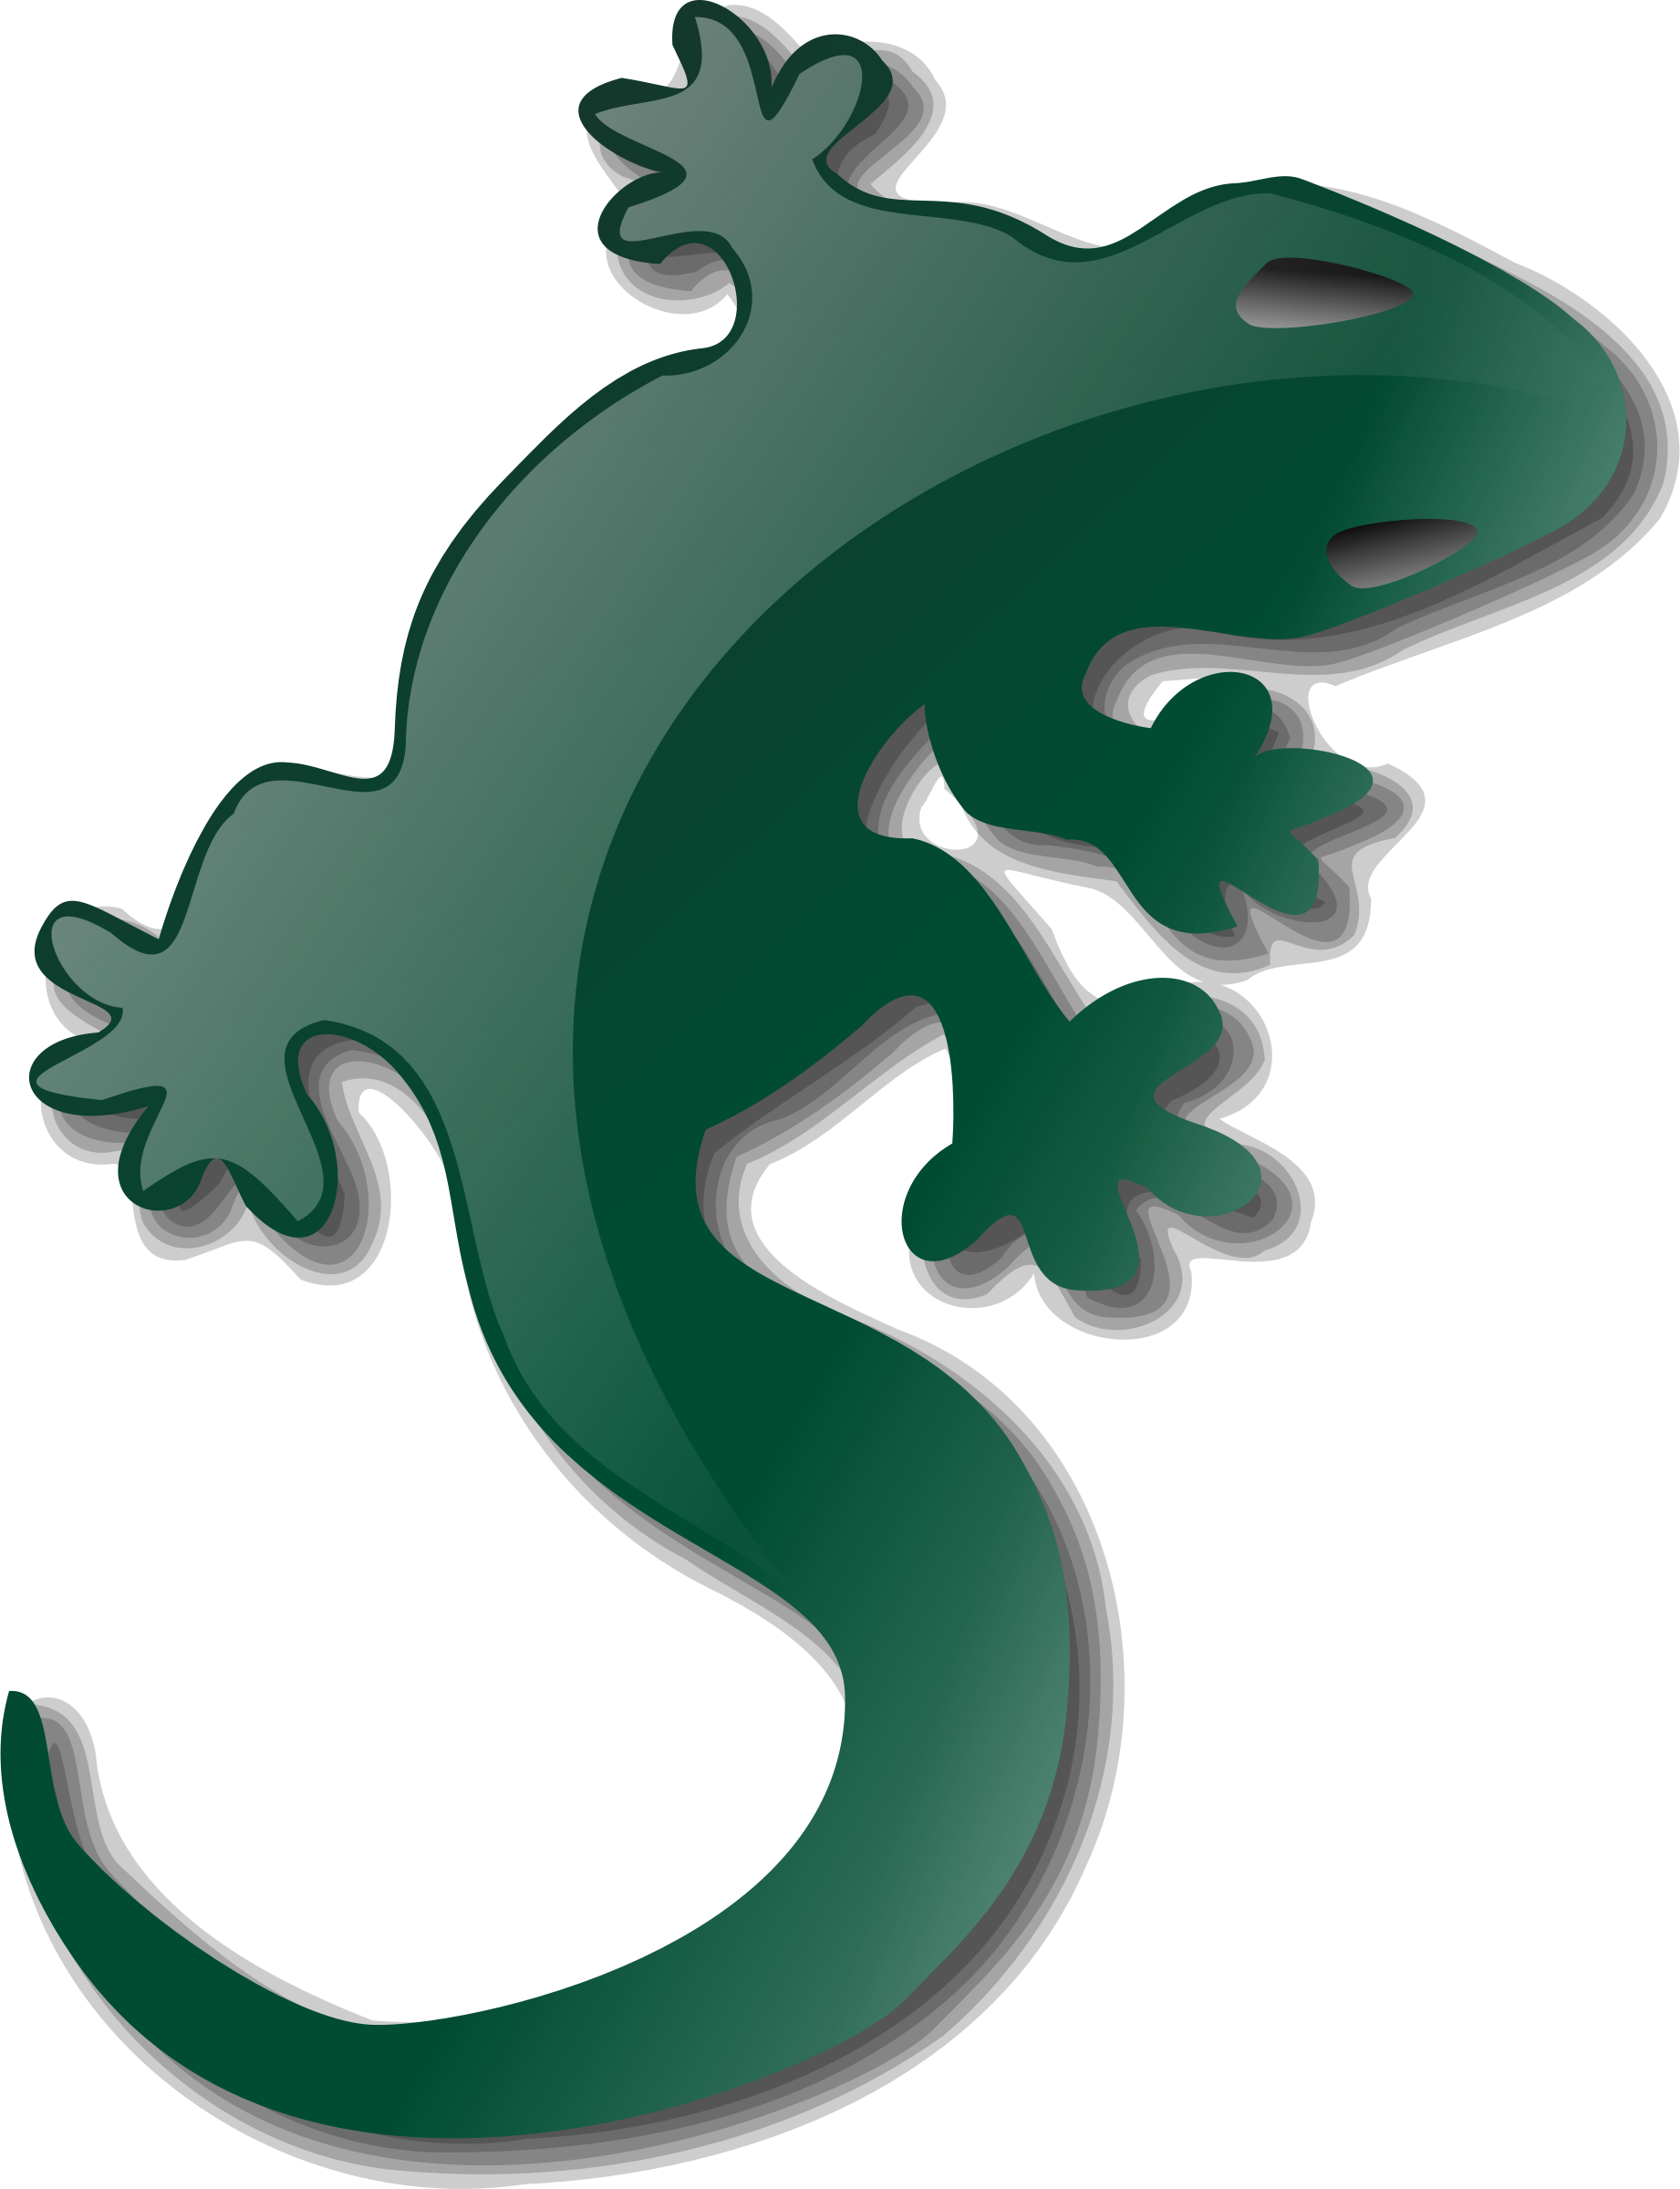 74 images of Reptile Clip Art . You can use these free cliparts for ...